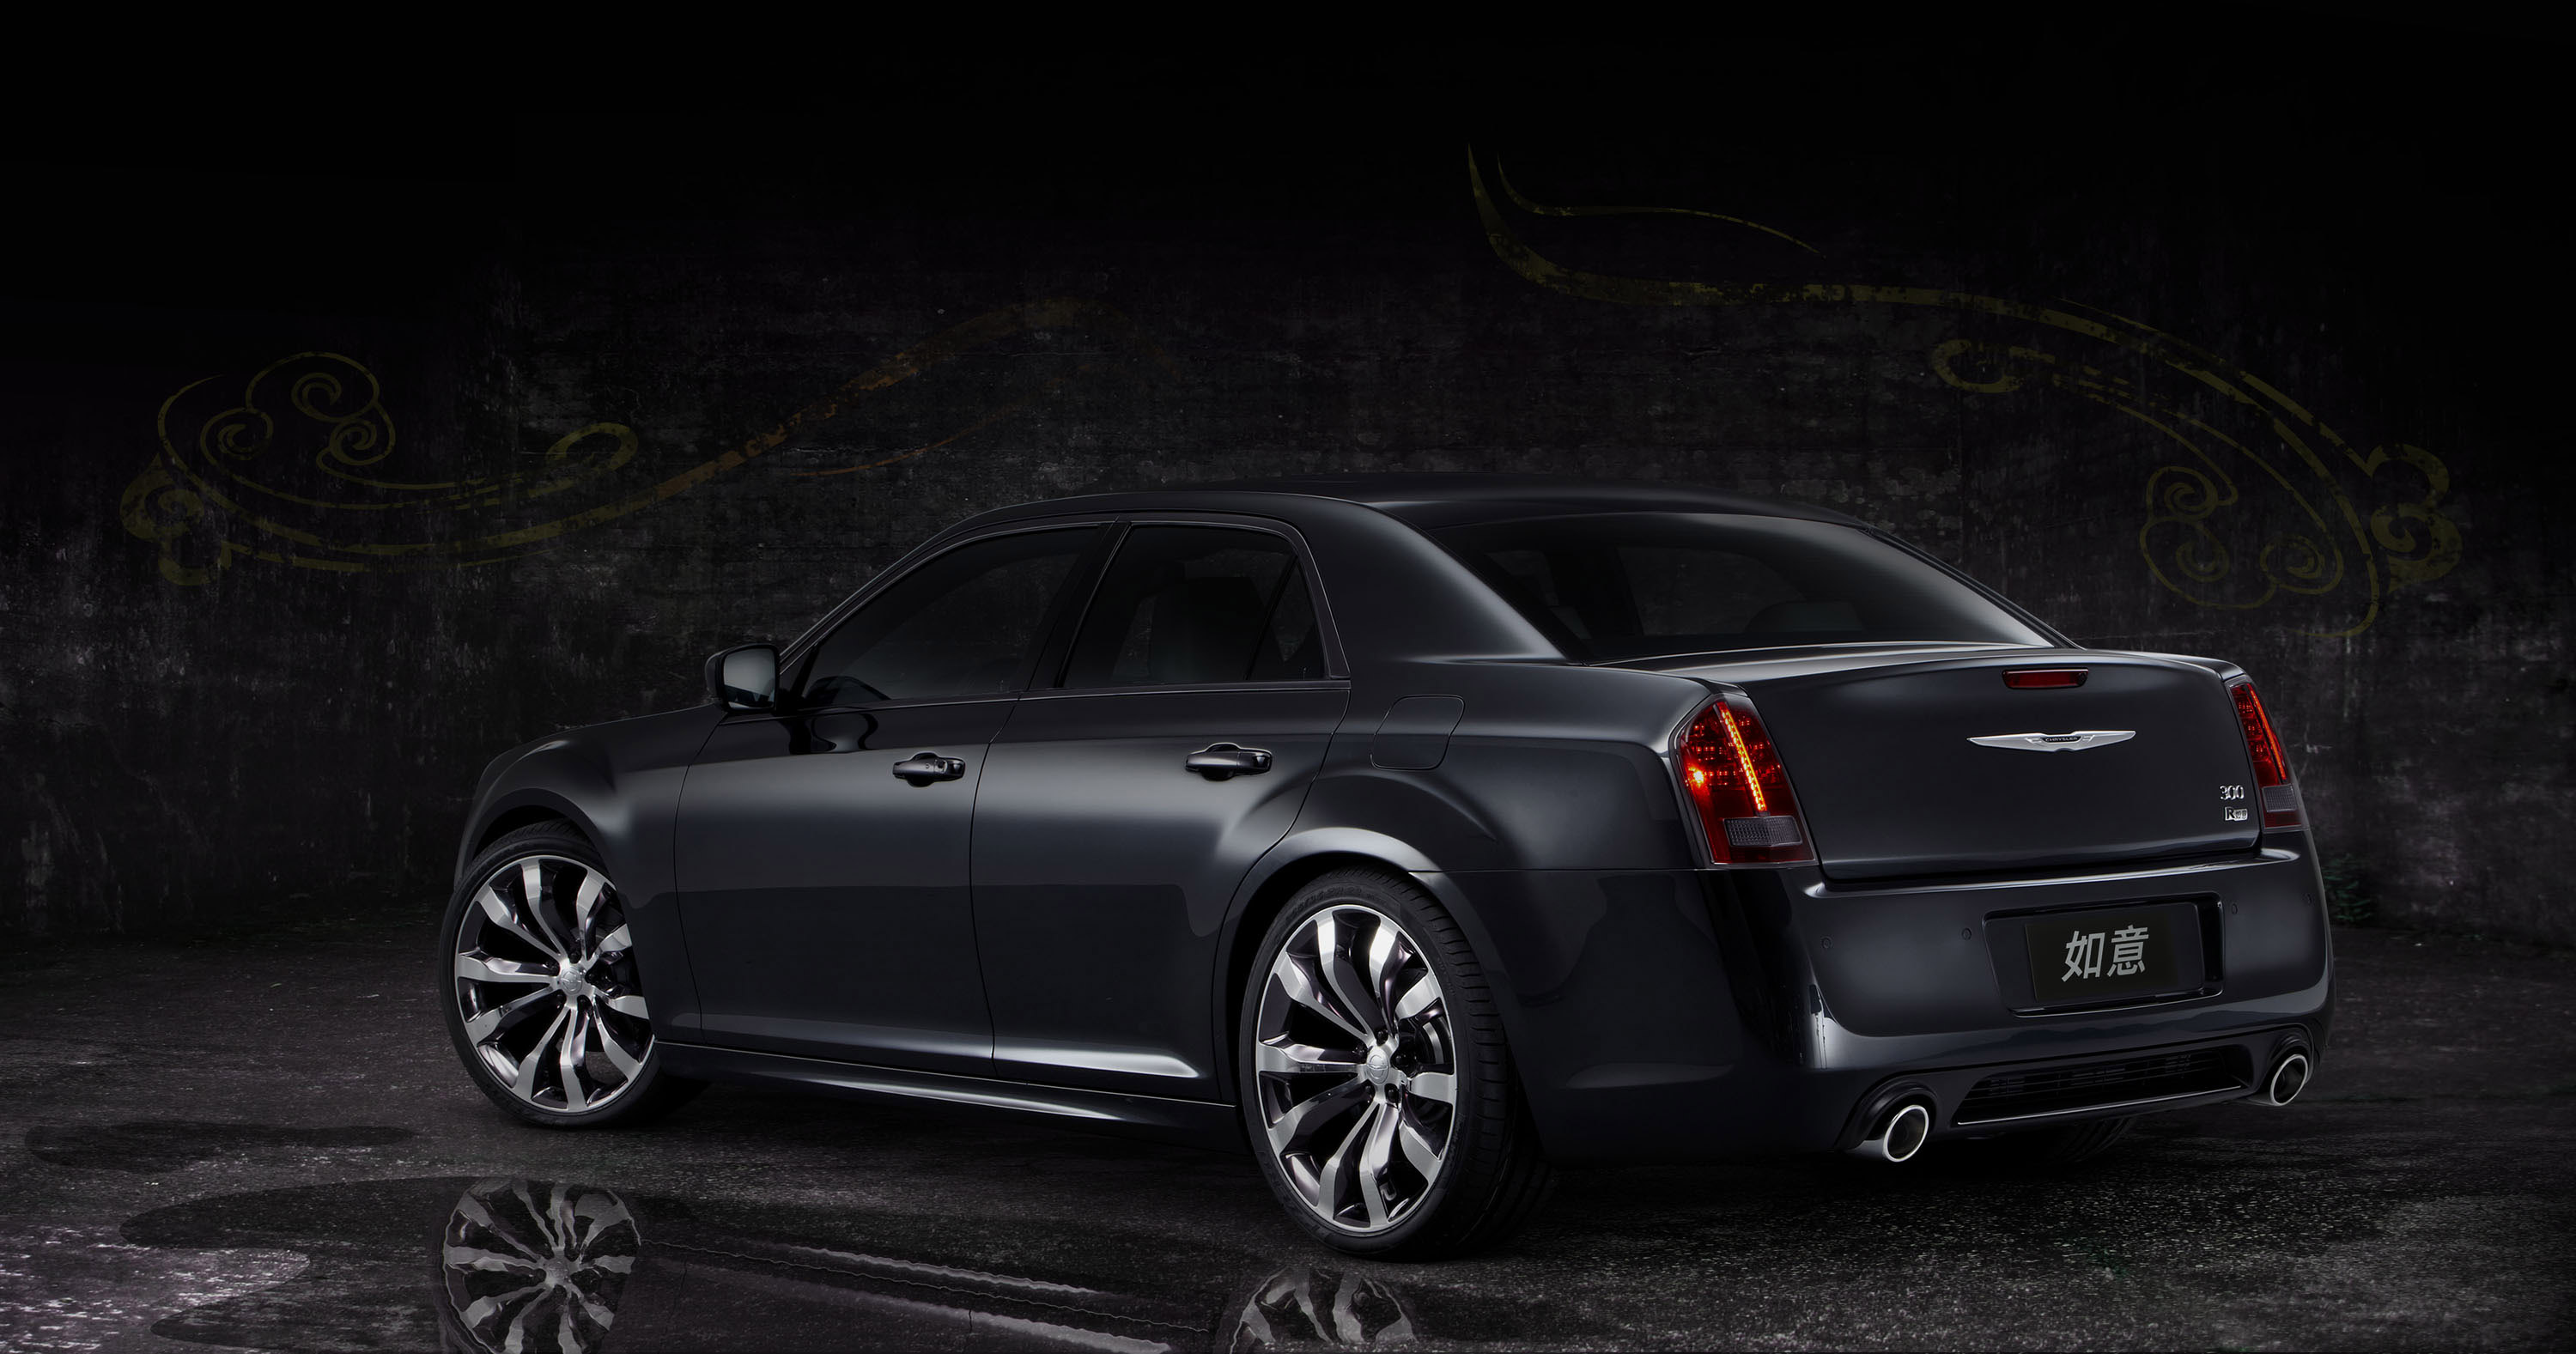 Chrysler 300 Ruyi Design Concept At 2012 Beijing